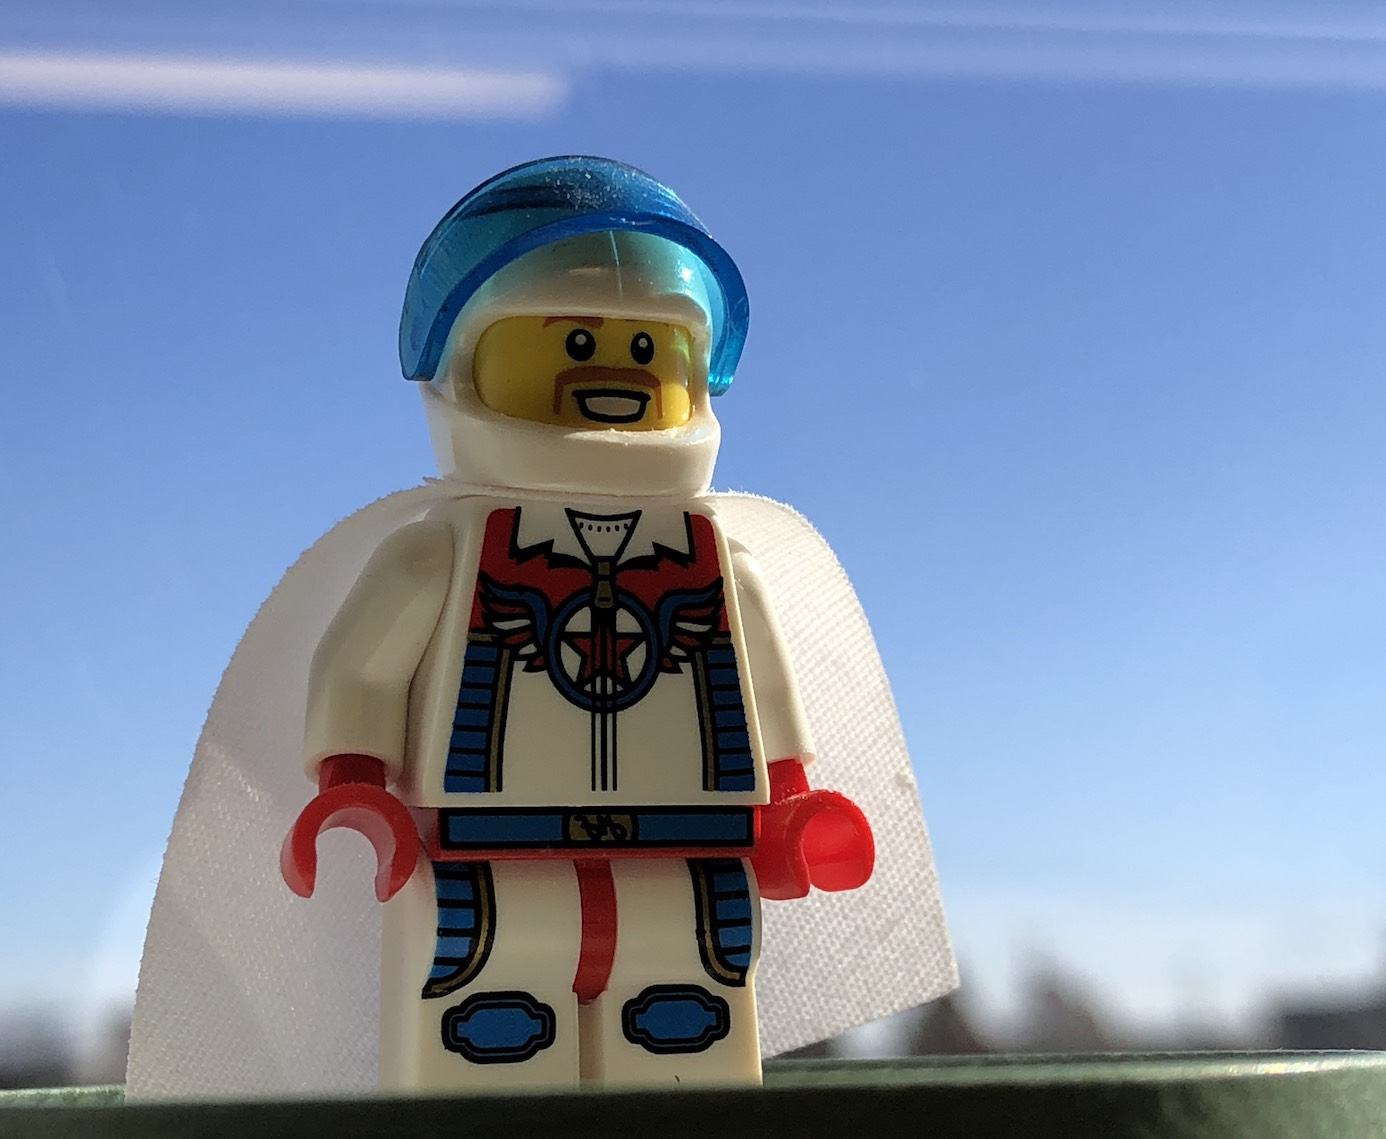 Lego mustachioed daredevil minifigure in a white jumpsuit with blue details and striping against a blue sky.